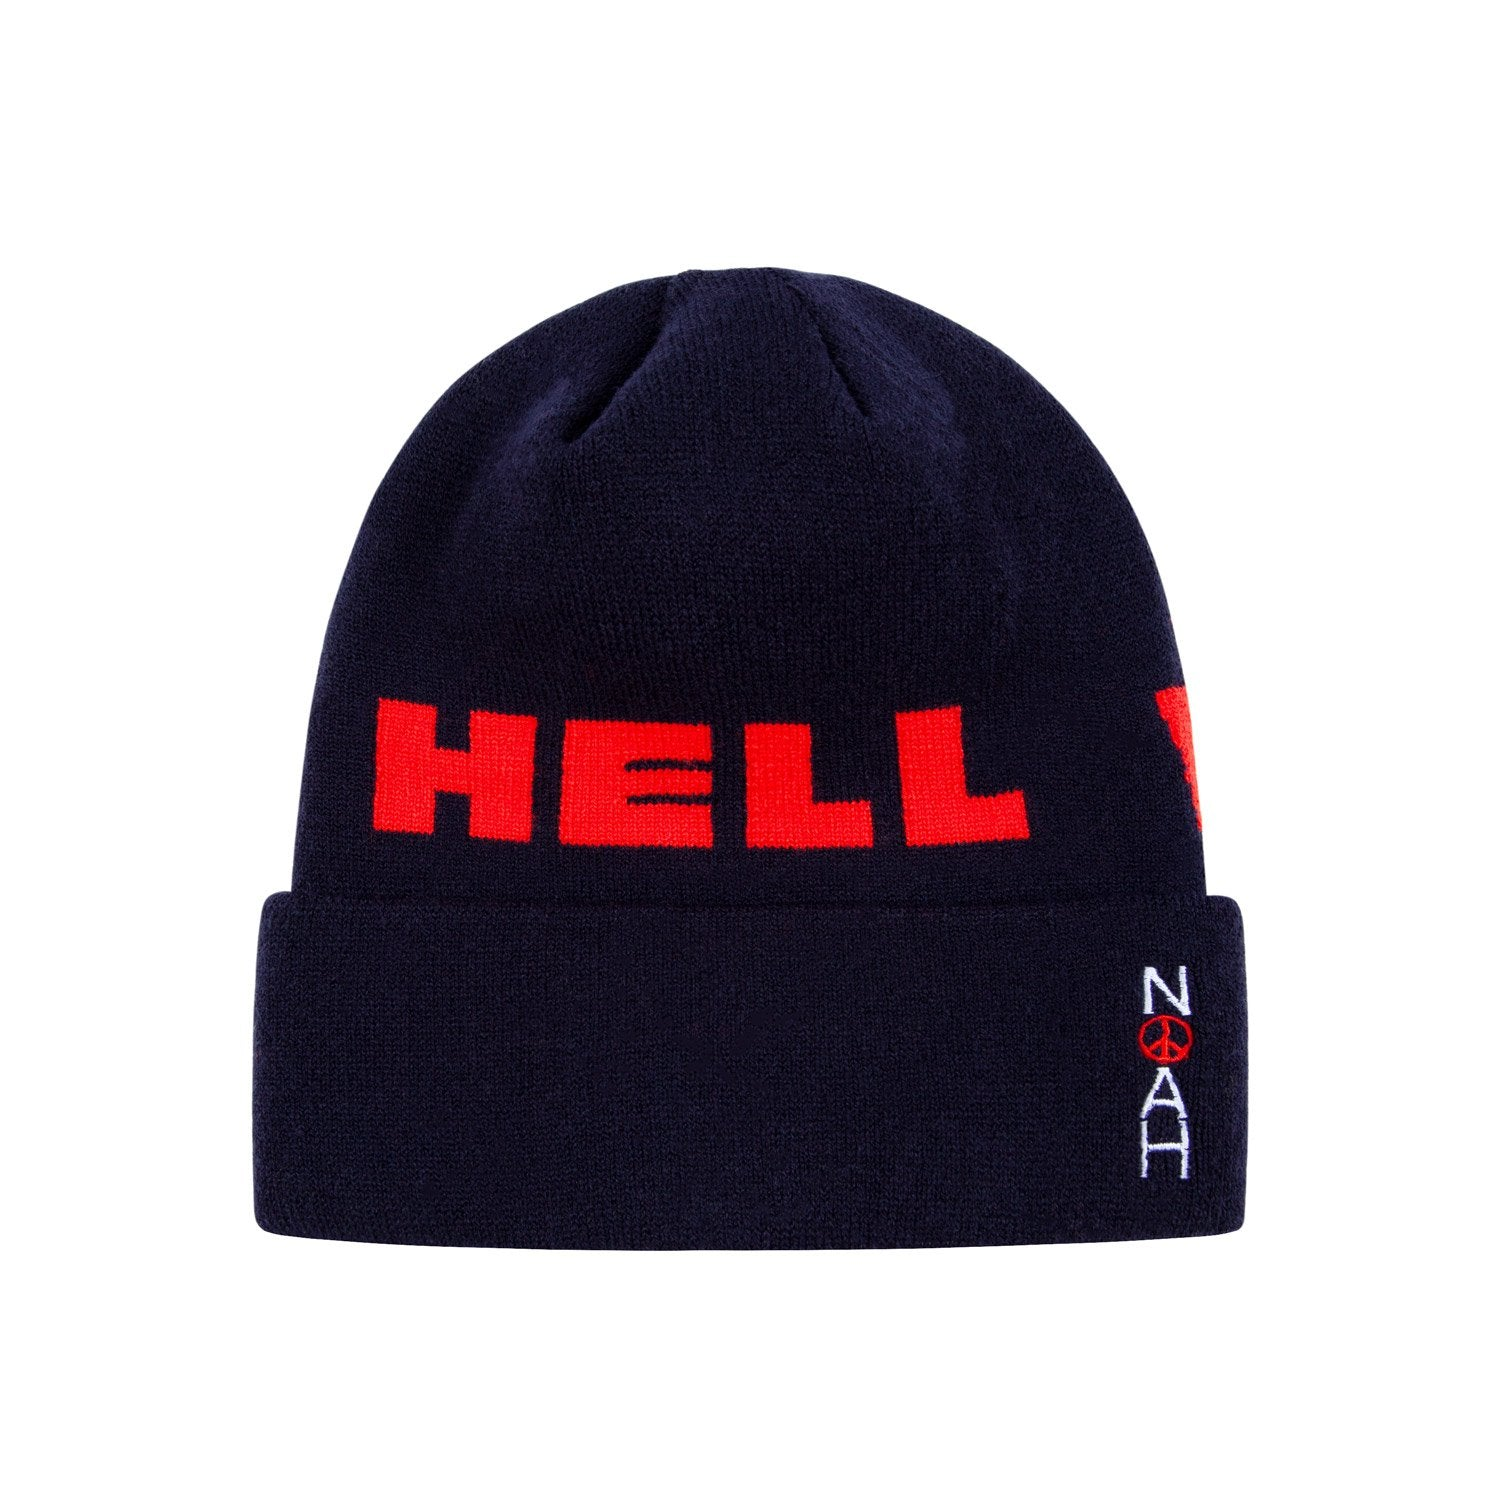 War is Hell Beanie